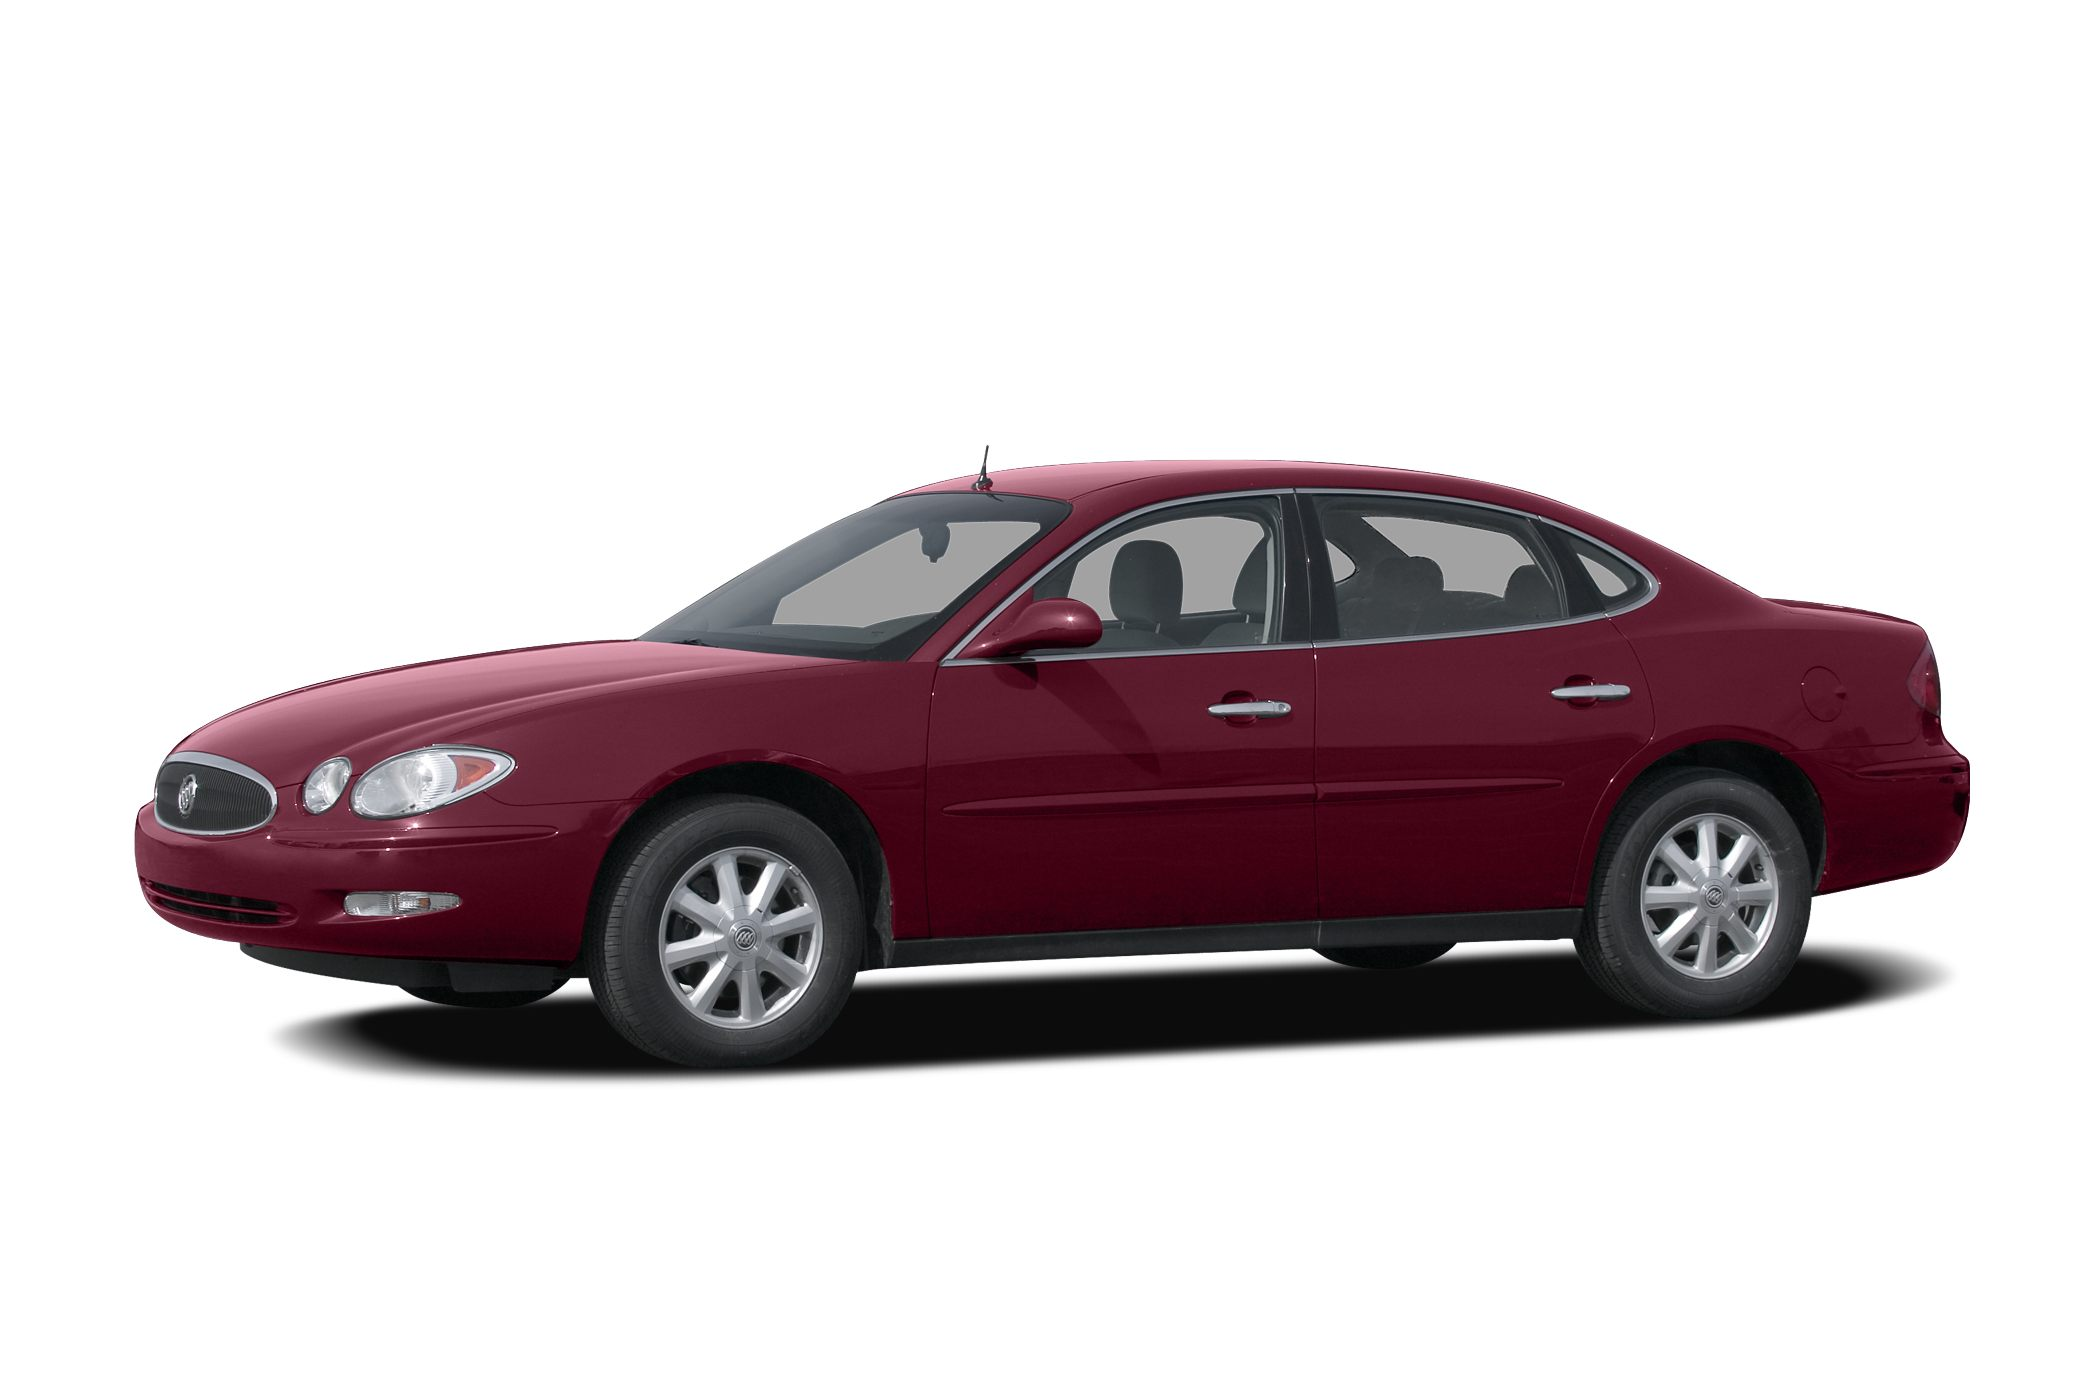 2009 Buick LaCrosse CXL ITS OUR 50TH ANNIVERSARY HERE AT MARTYS AND TO CELEBRATE WERE OFFERING TH